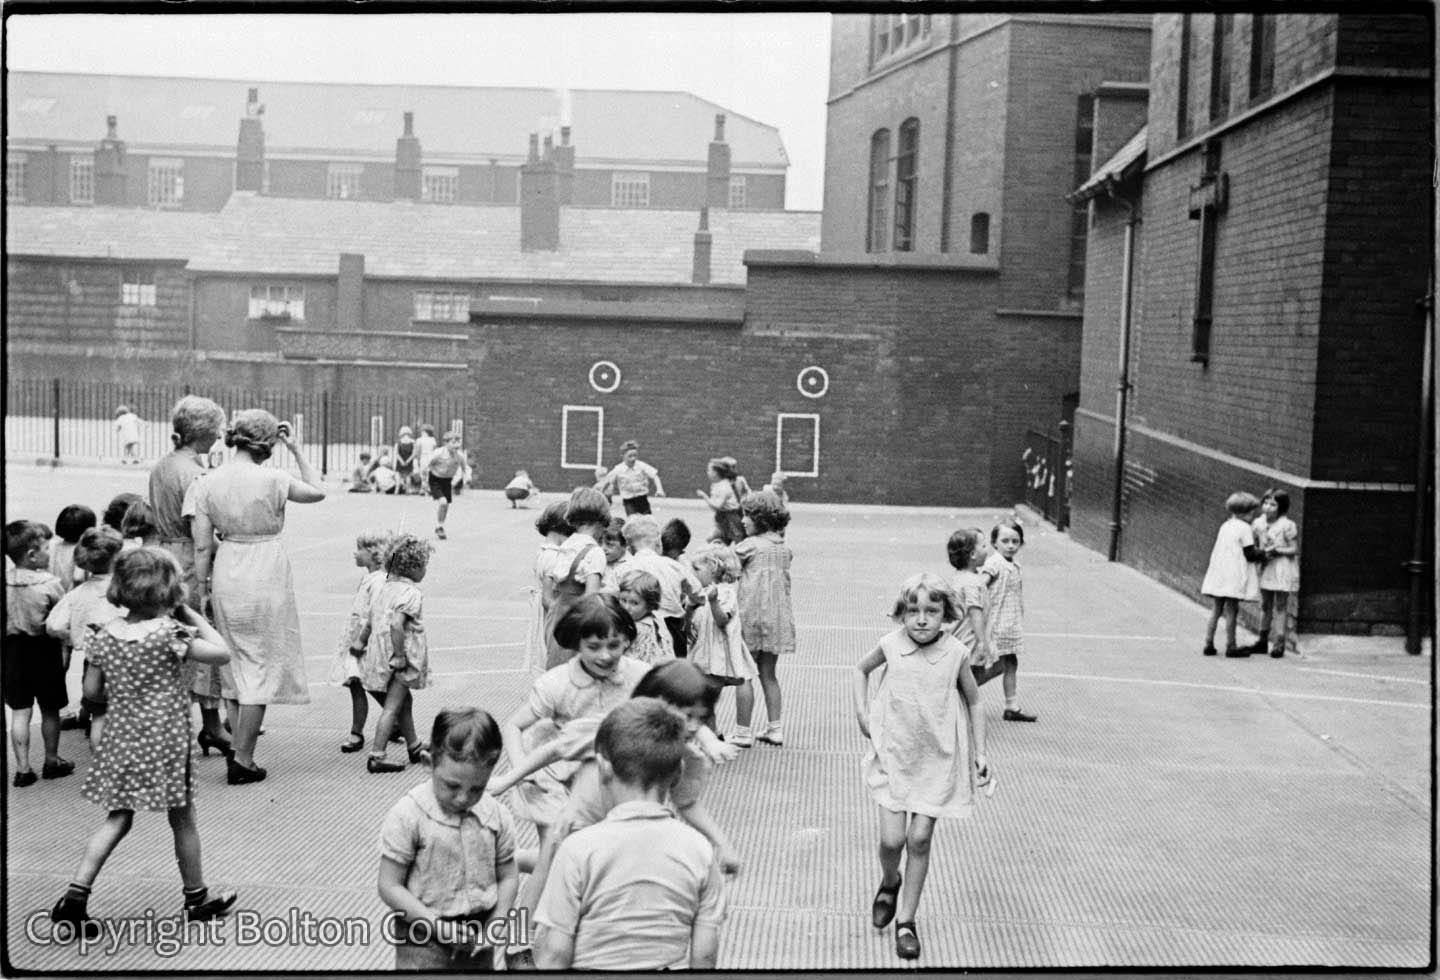 School Playground photographed by Humphrey Spender